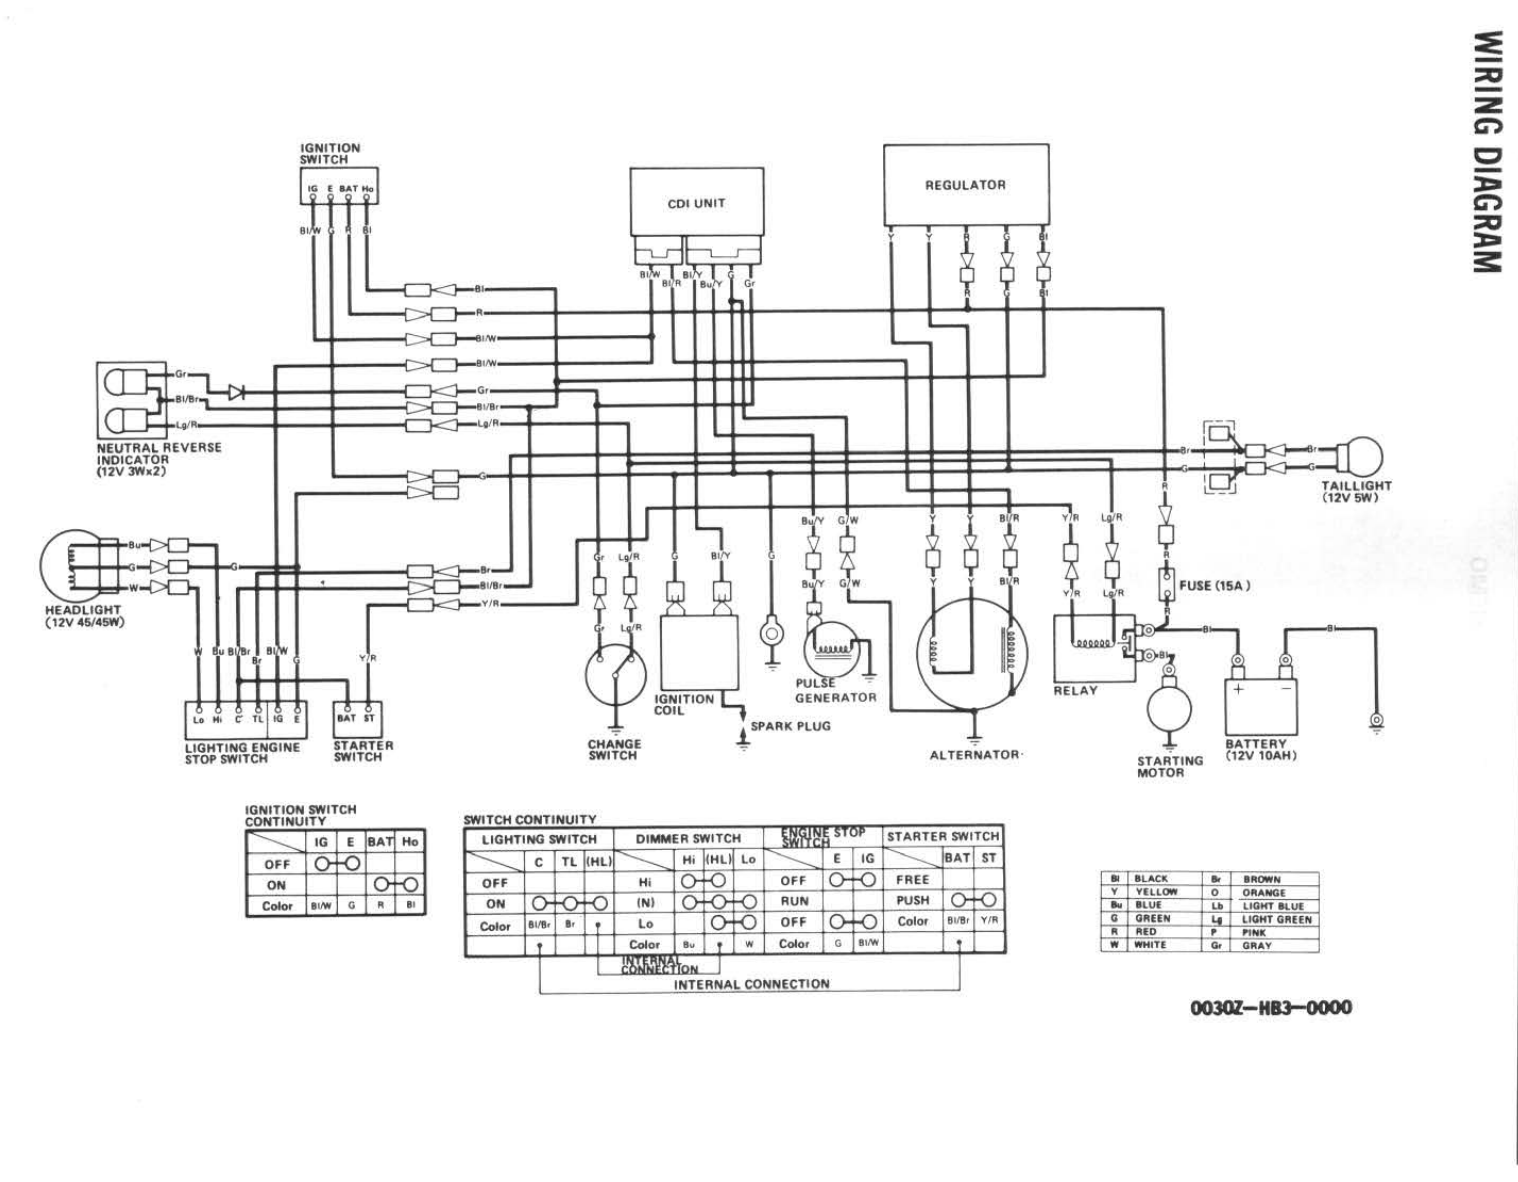 DIAGRAM] Honda 250 Sportrax Wiring Diagram FULL Version HD Quality Wiring  Diagram - MSGDIAGRAM.MAGNETIKITALIA.ITMagnetik Italia srl